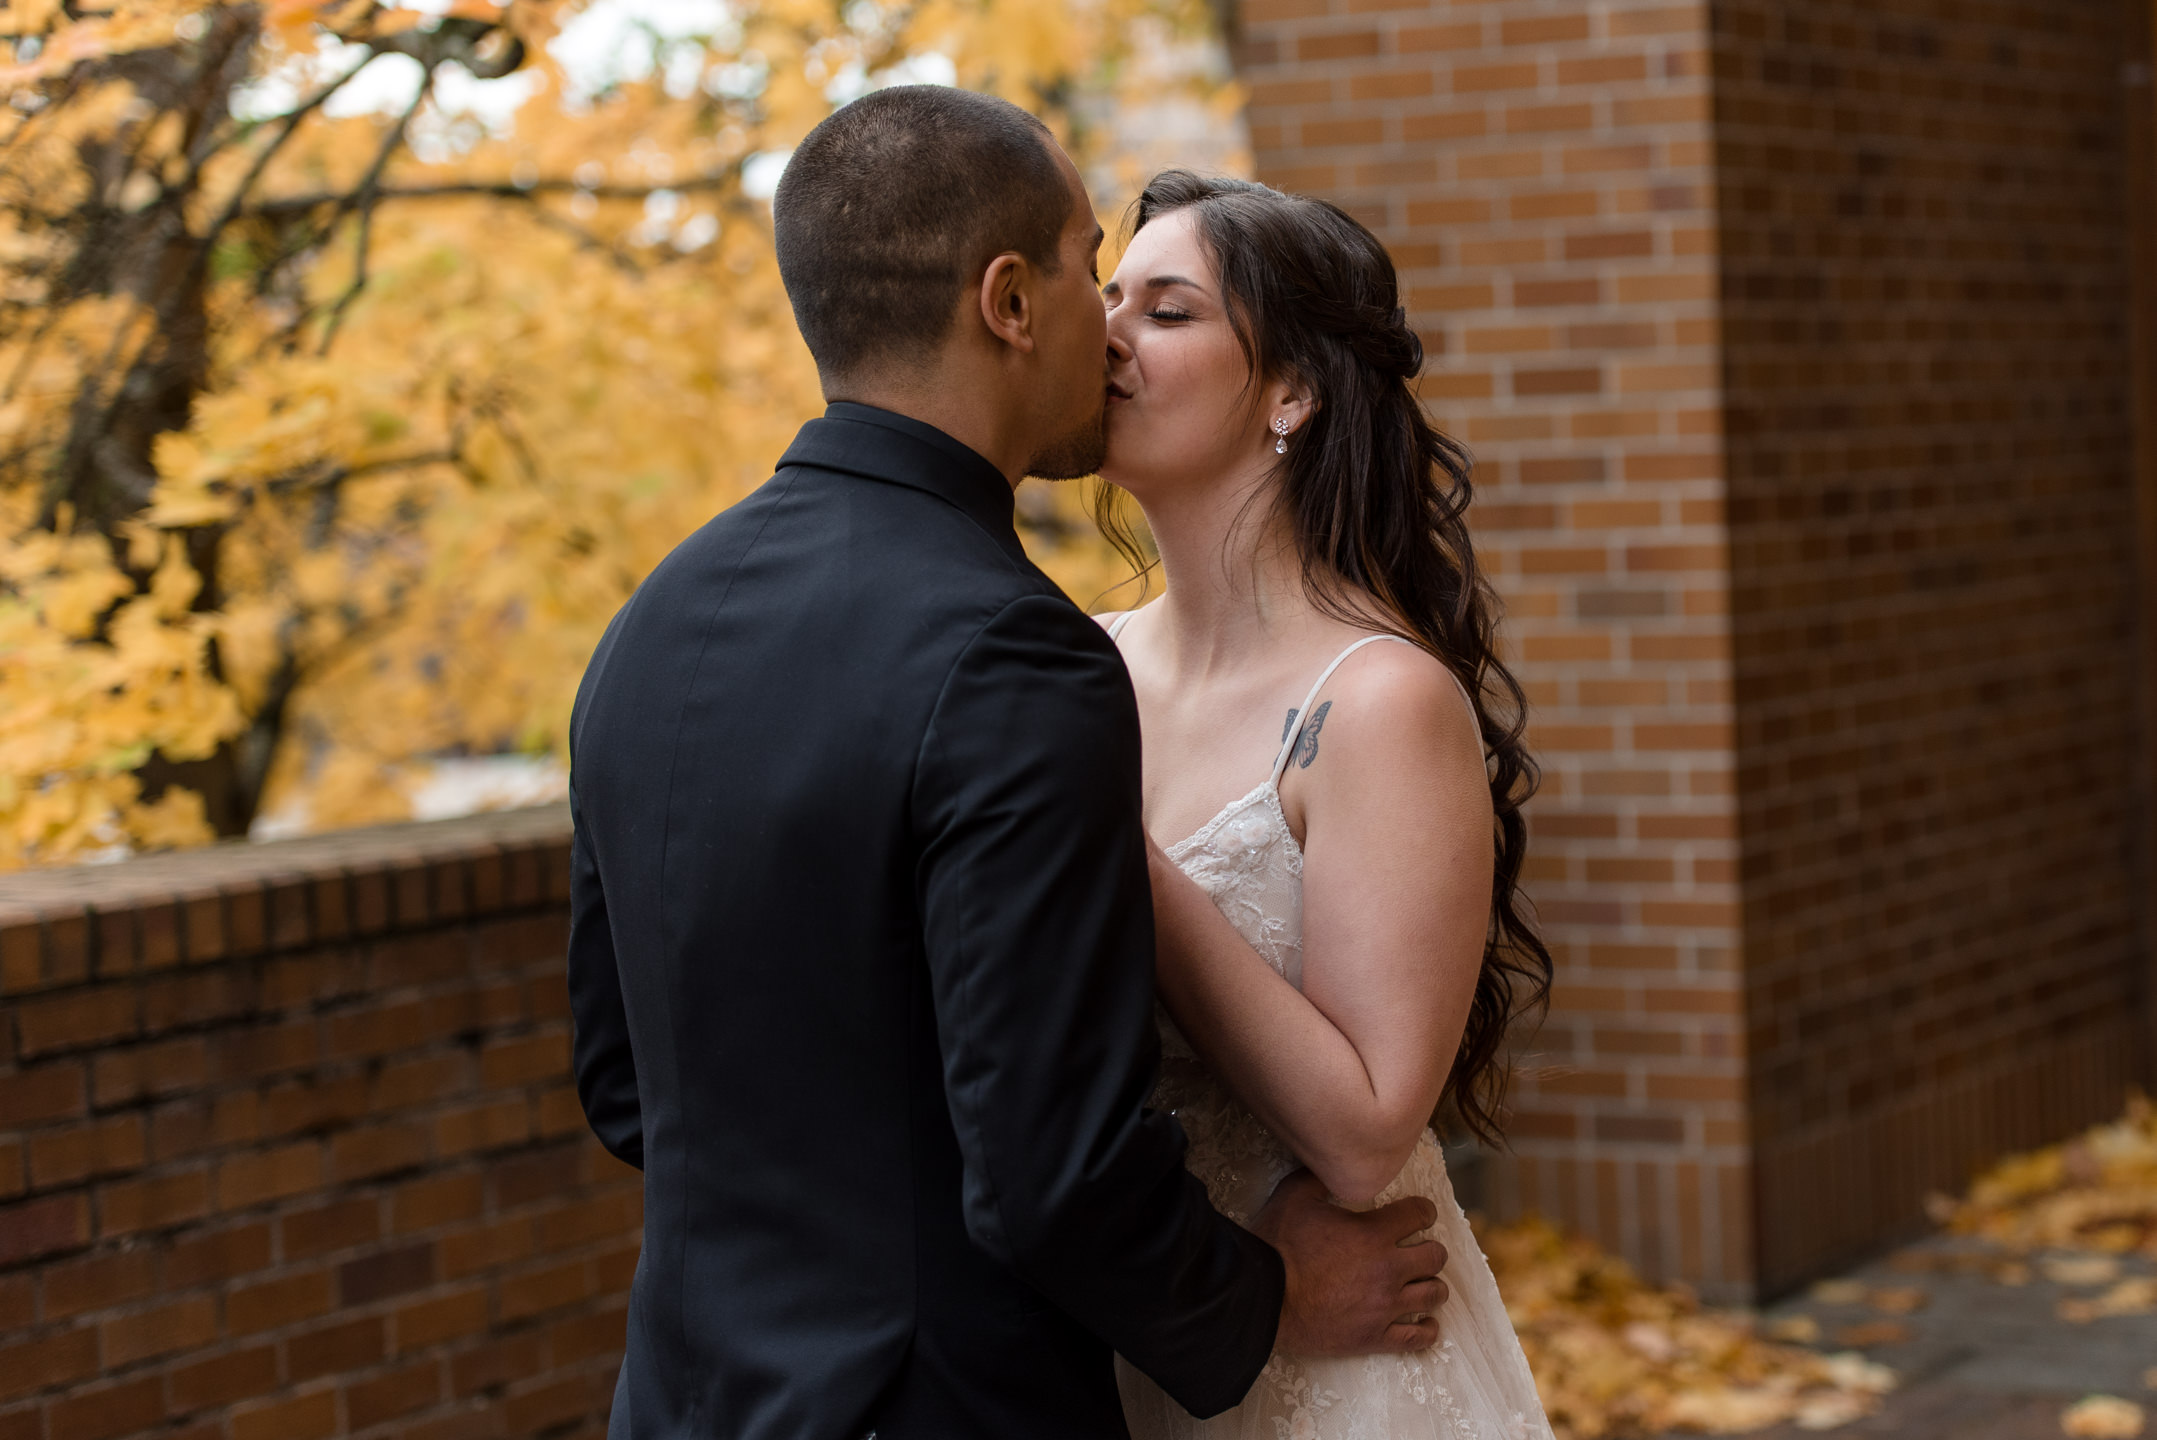 Kayli & Sergio First Look Kiss by Andrew Tat, Seattle Documentary Wedding Photography